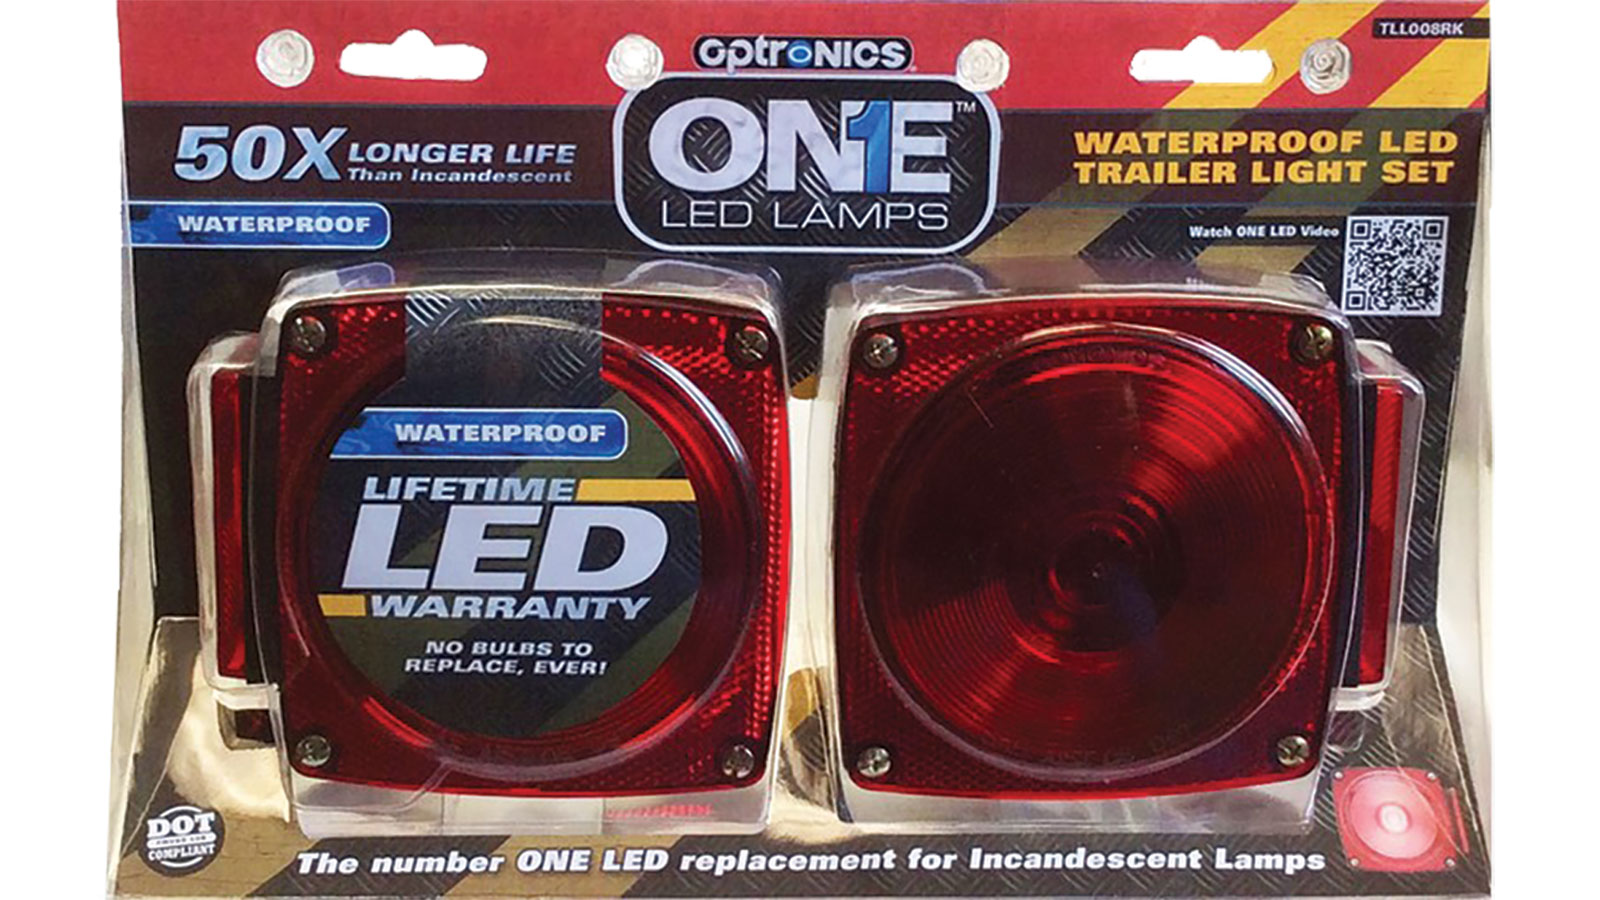 Optronics ONE LED Trailer Lights 2-Pack - Marine Supplies, Trailer Parts And Accessories at Academy Sports